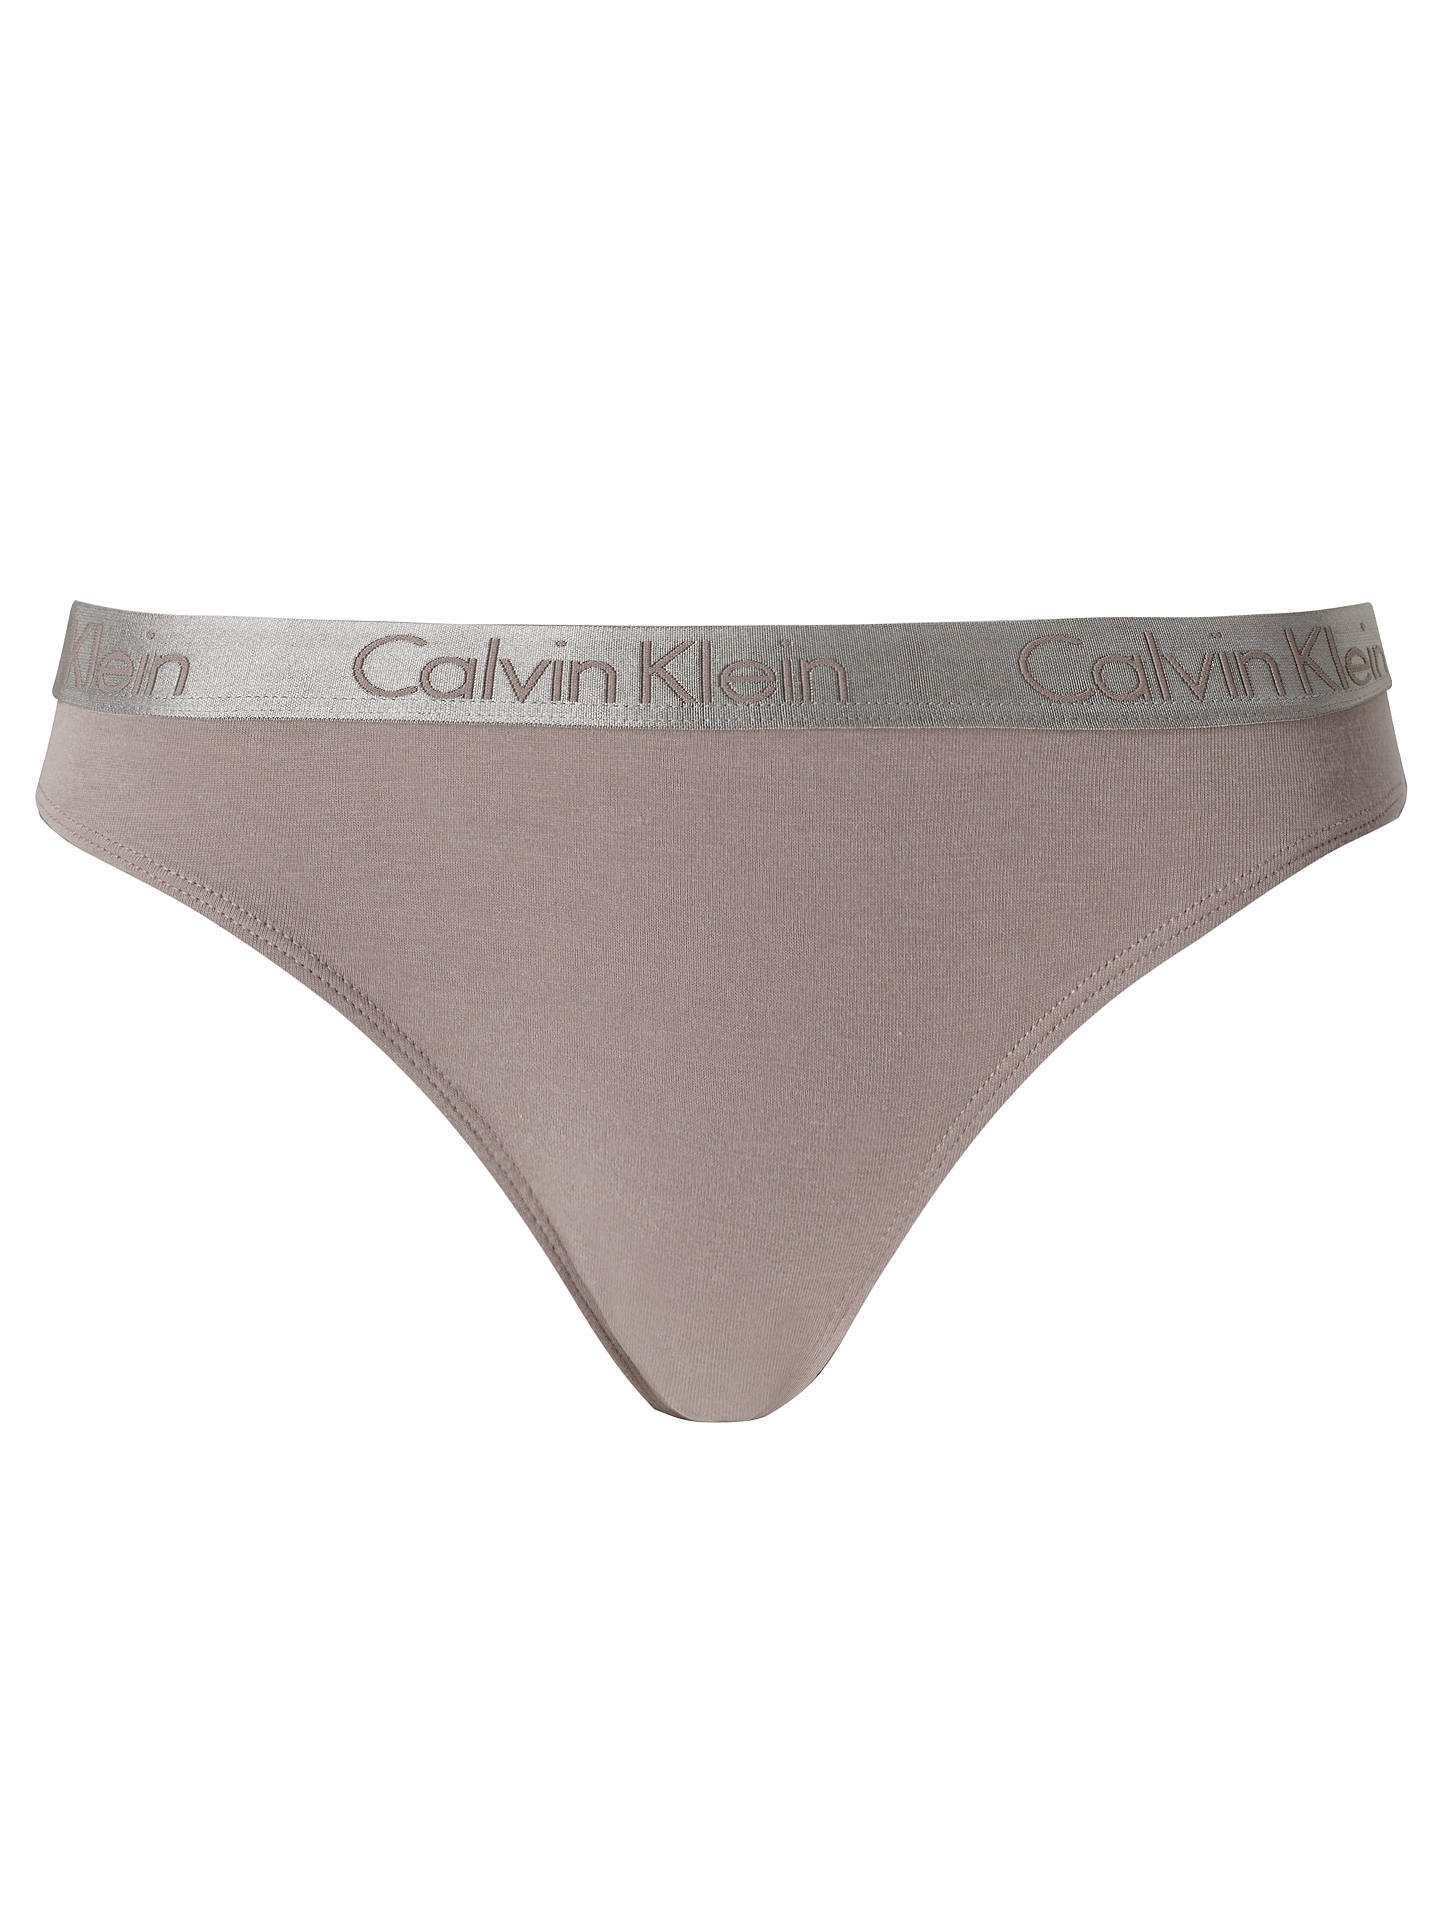 5ddd5e52bbef Buy Calvin Klein Radiant Cotton Bikini Briefs, Grey Sand, S Online at  johnlewis.